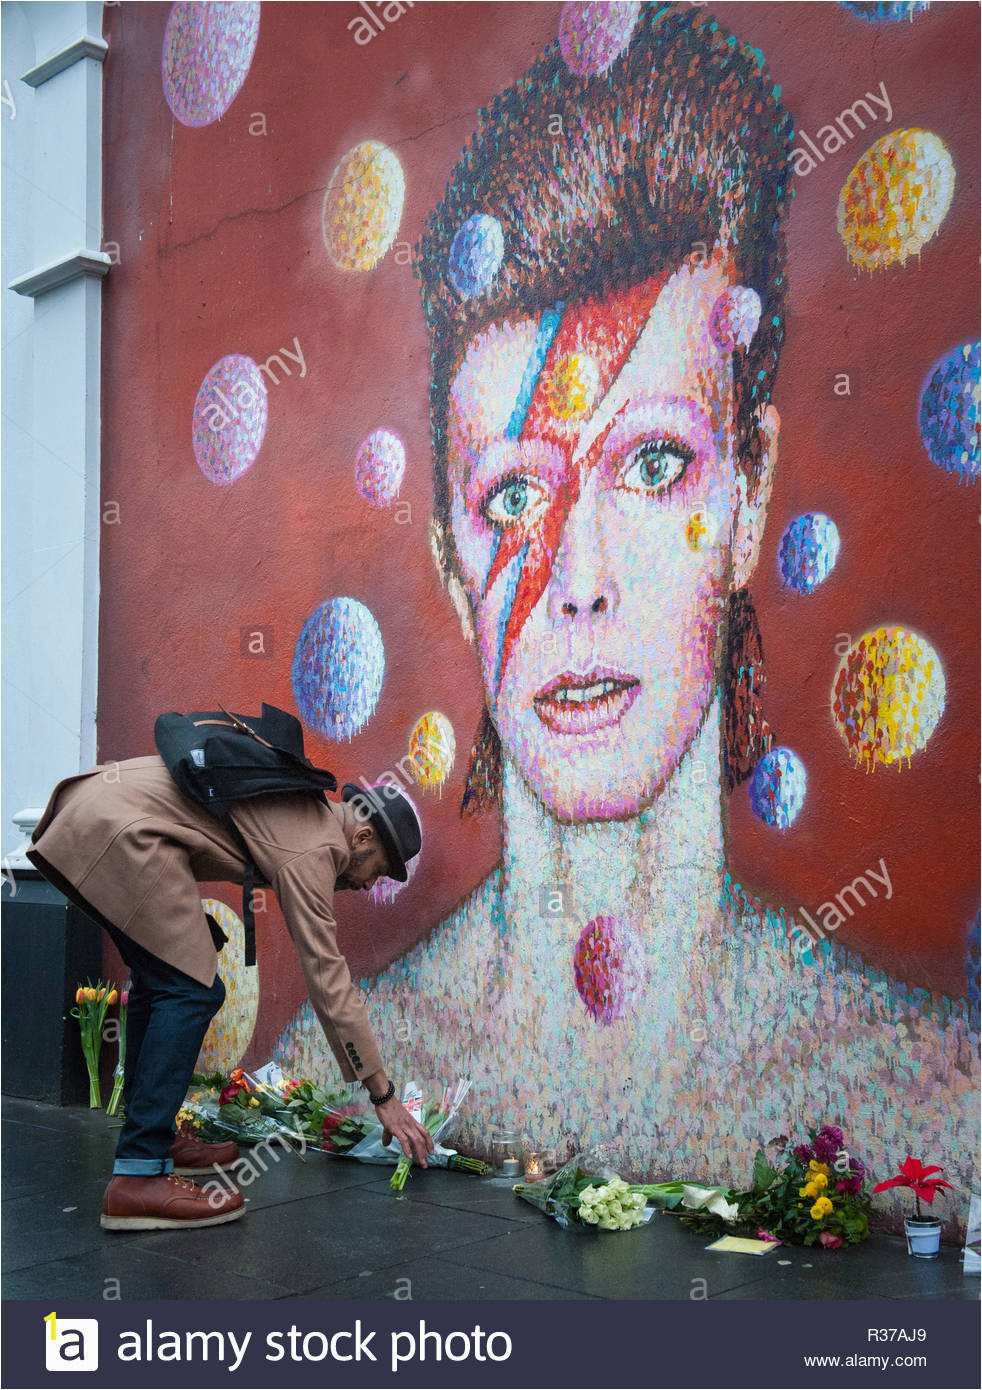 tunstall road london uk 11th january 2016 london uk mourners lay flowers at the foot of the david bowie mural in brixton pictured a man lay R37AJ9